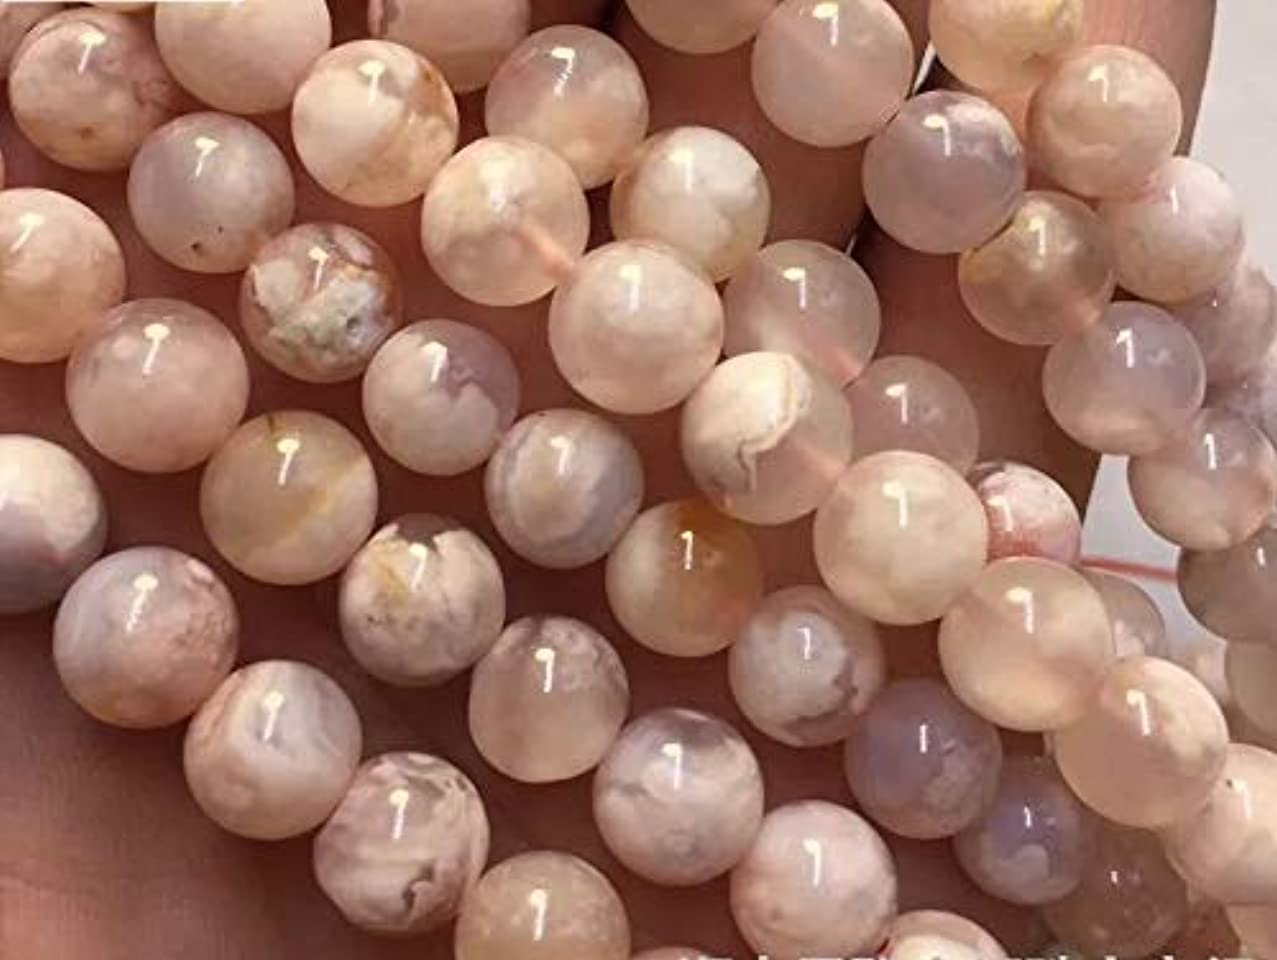 [ABCgems] Madagascan Sakura Agate AKA Cherry Blossom Agate (Beautiful Inclusions) Tiny 6mm Smooth Round Beads for Beading & Jewelry Making